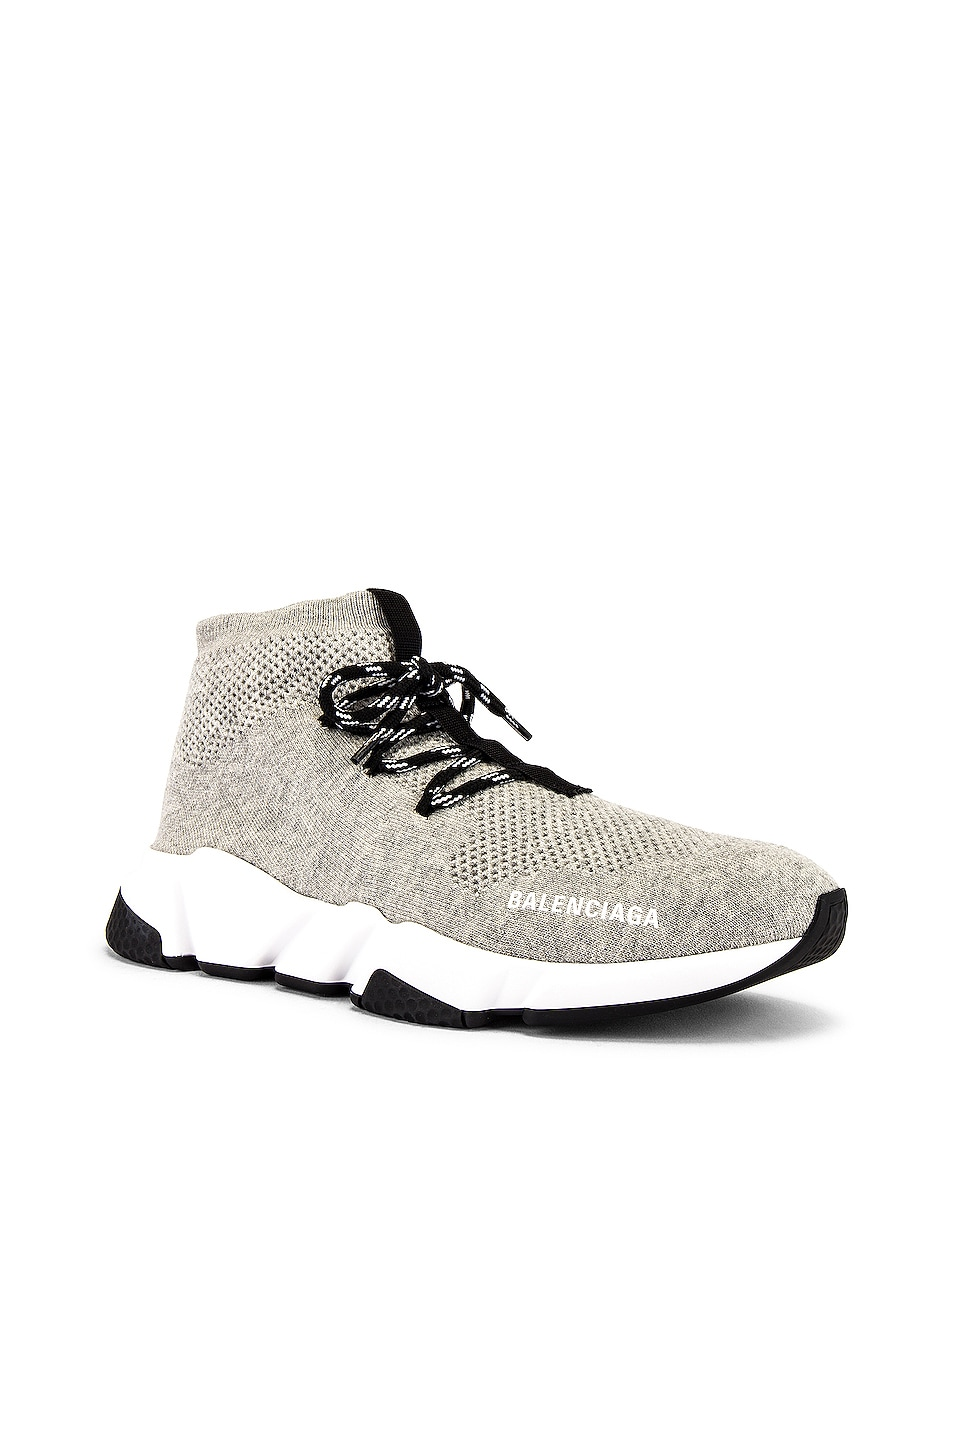 Image 1 of Balenciaga Speed Light Sneaker Lace Up in Grey & White & Black